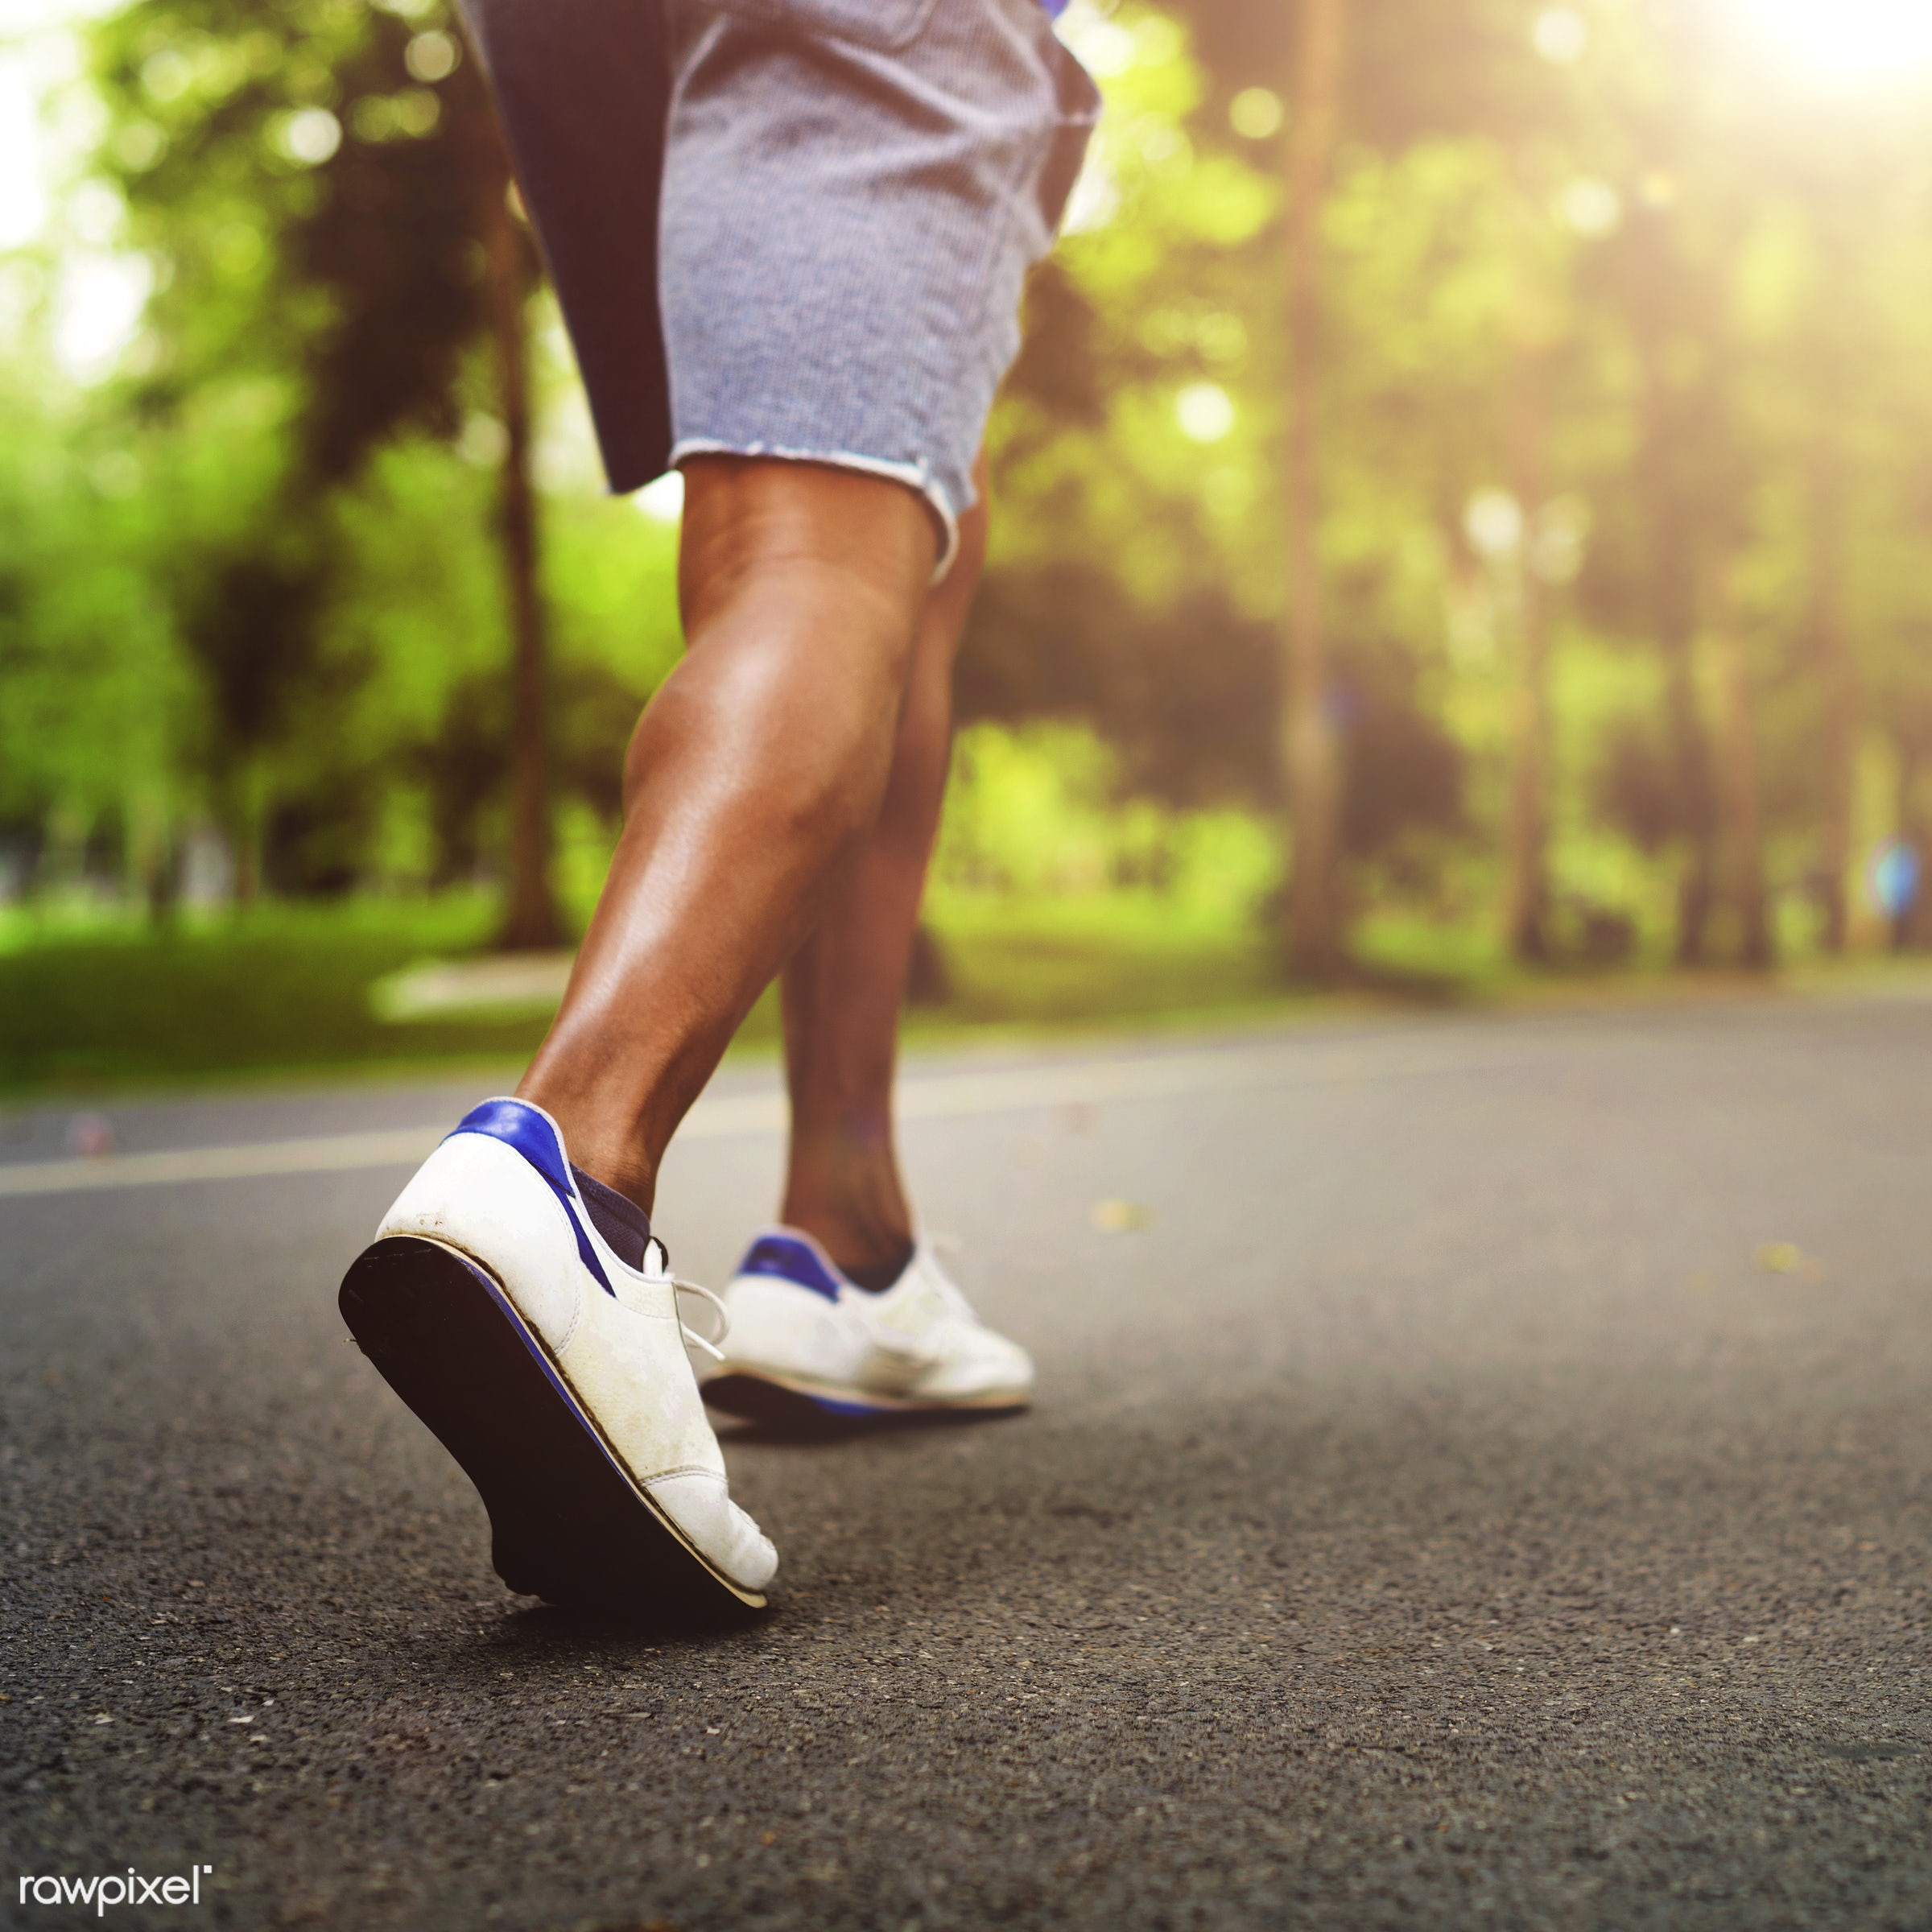 A man jogging in the park - runner, fitness, athlete, fit, running, technology, active, activity, app, application, black,...